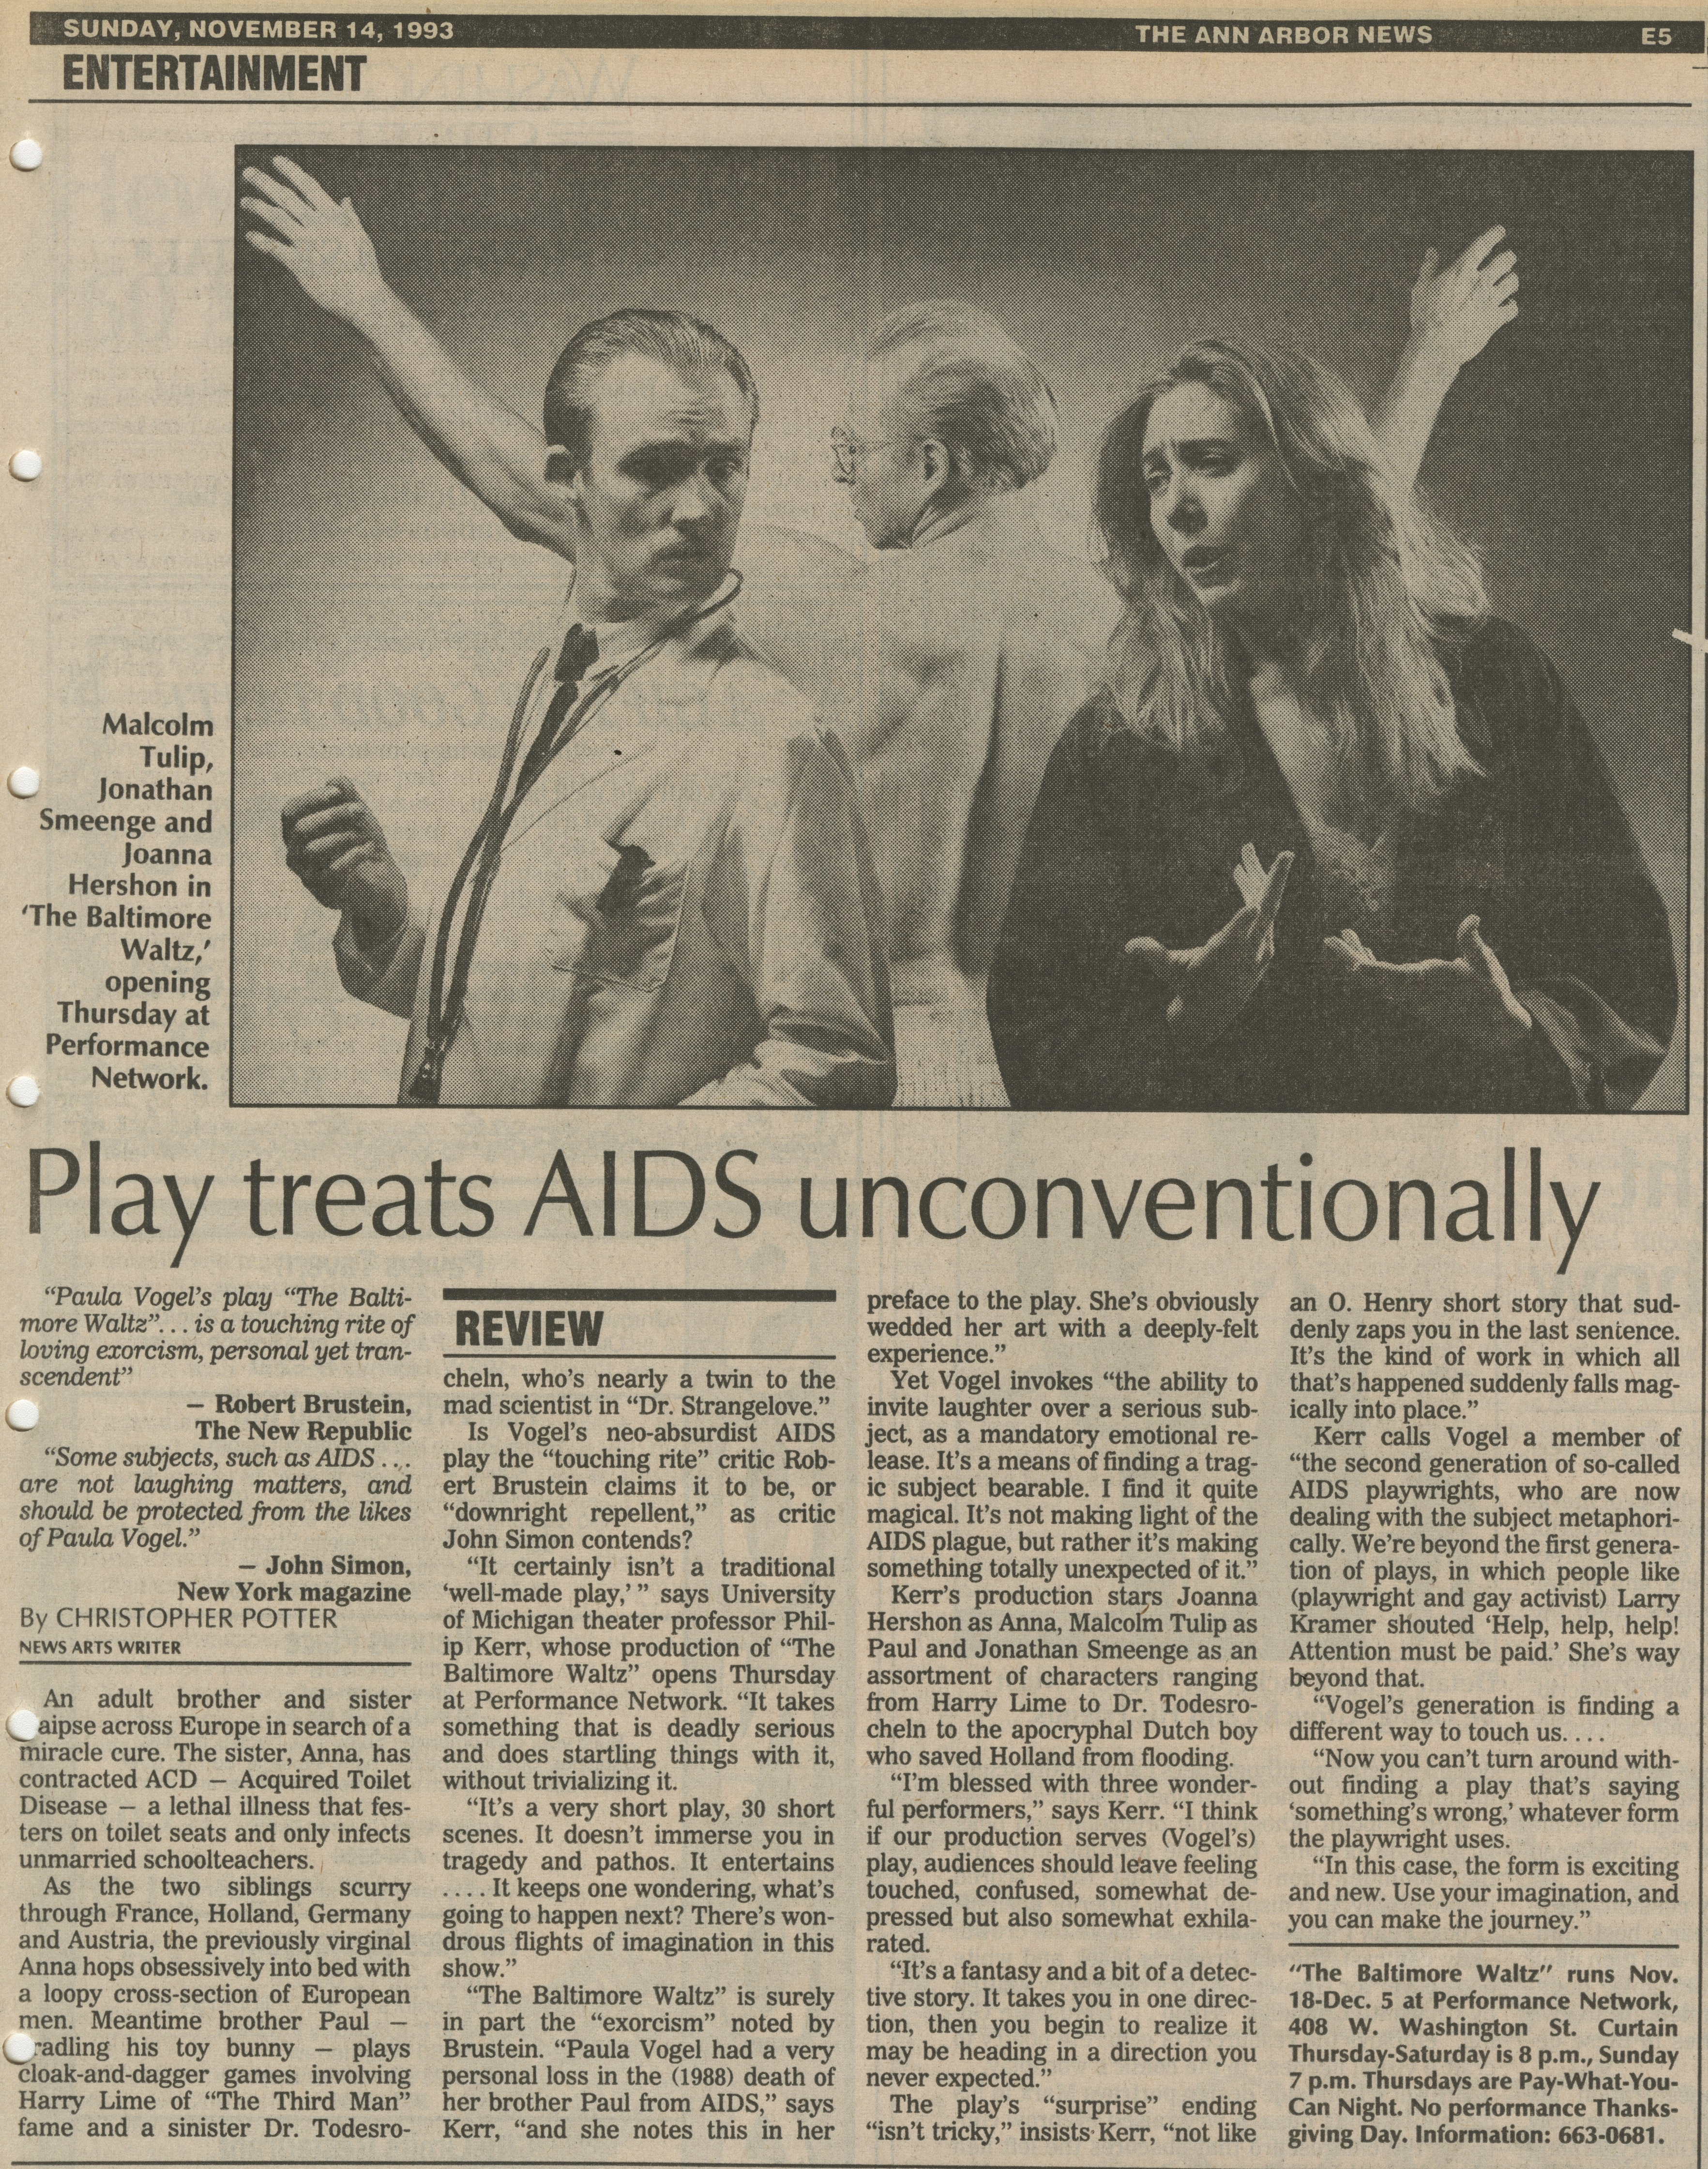 Play treats AIDS unconventionally image